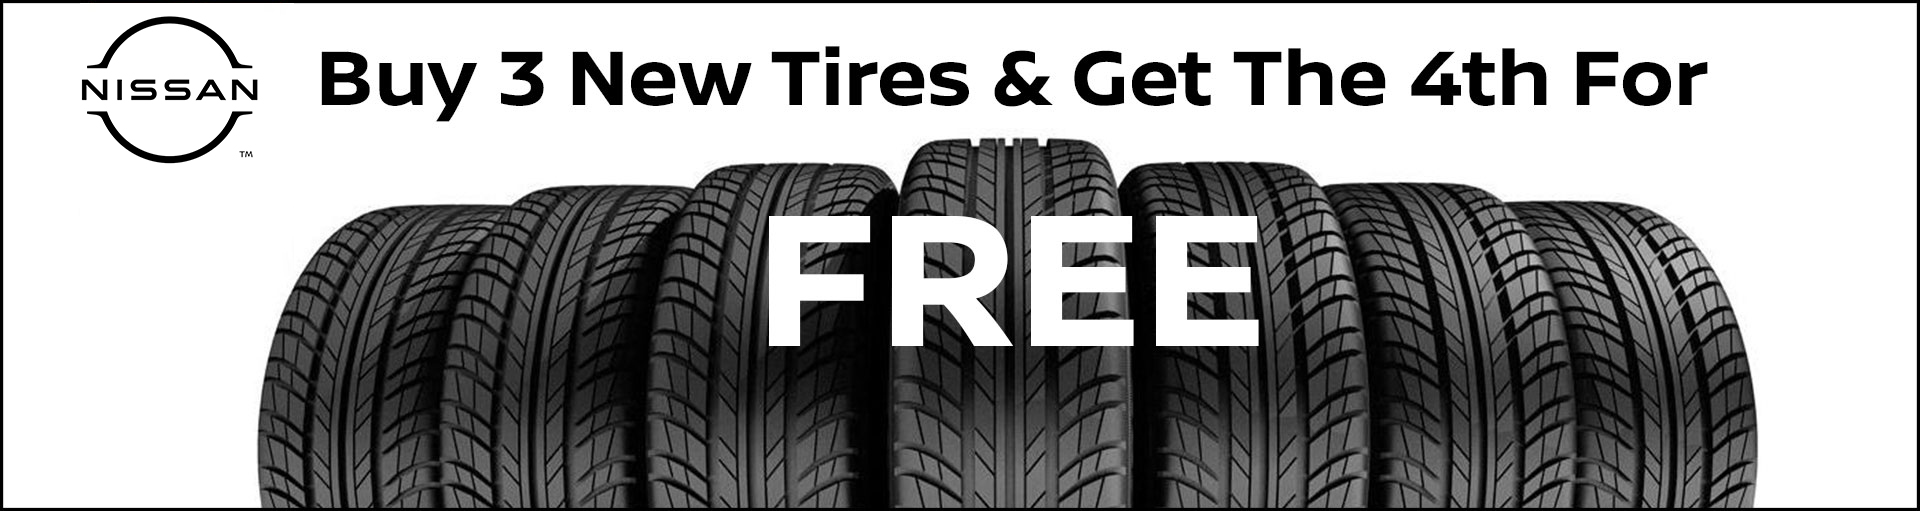 Nissan Tire Service Special Coupon